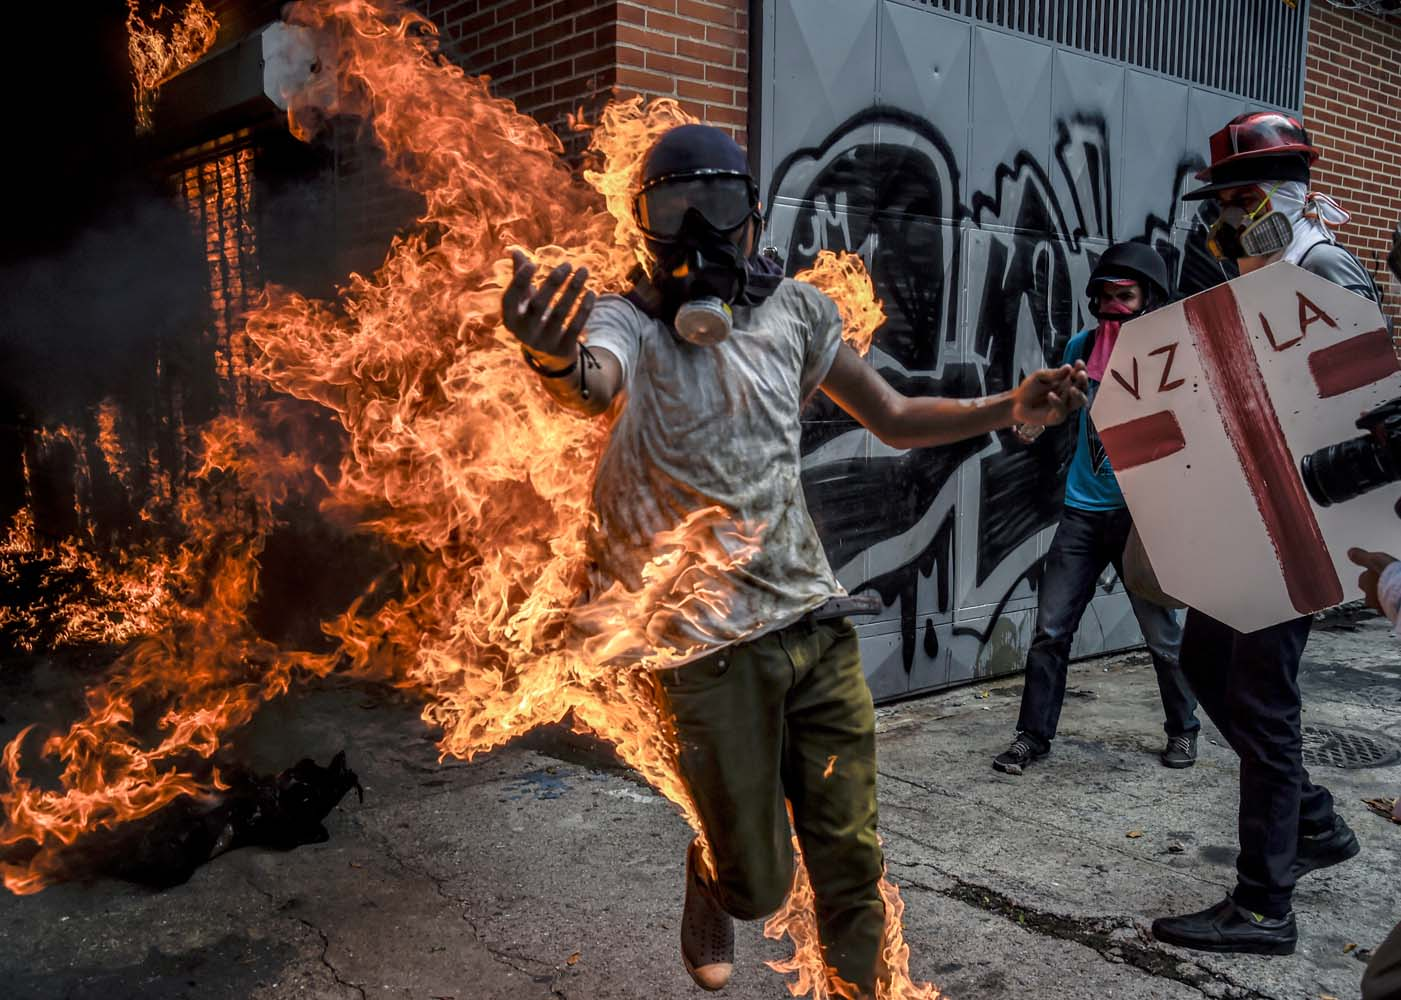 "(FILES) This file photo taken on May 03, 2017 shows a demonstrator catching fire after the gas tank of a police motorbike exploded during clashes in a protest against Venezuelan President Nicolas Maduro, in Caracas on May 3, 2017. From his hospital bed where he lay in bandages with burns on 70 percent of his body, Victor Salazar sent a video urging protesters: ""Get out into the street, not for me but for Venezuela."" / AFP PHOTO / JUAN BARRETO"